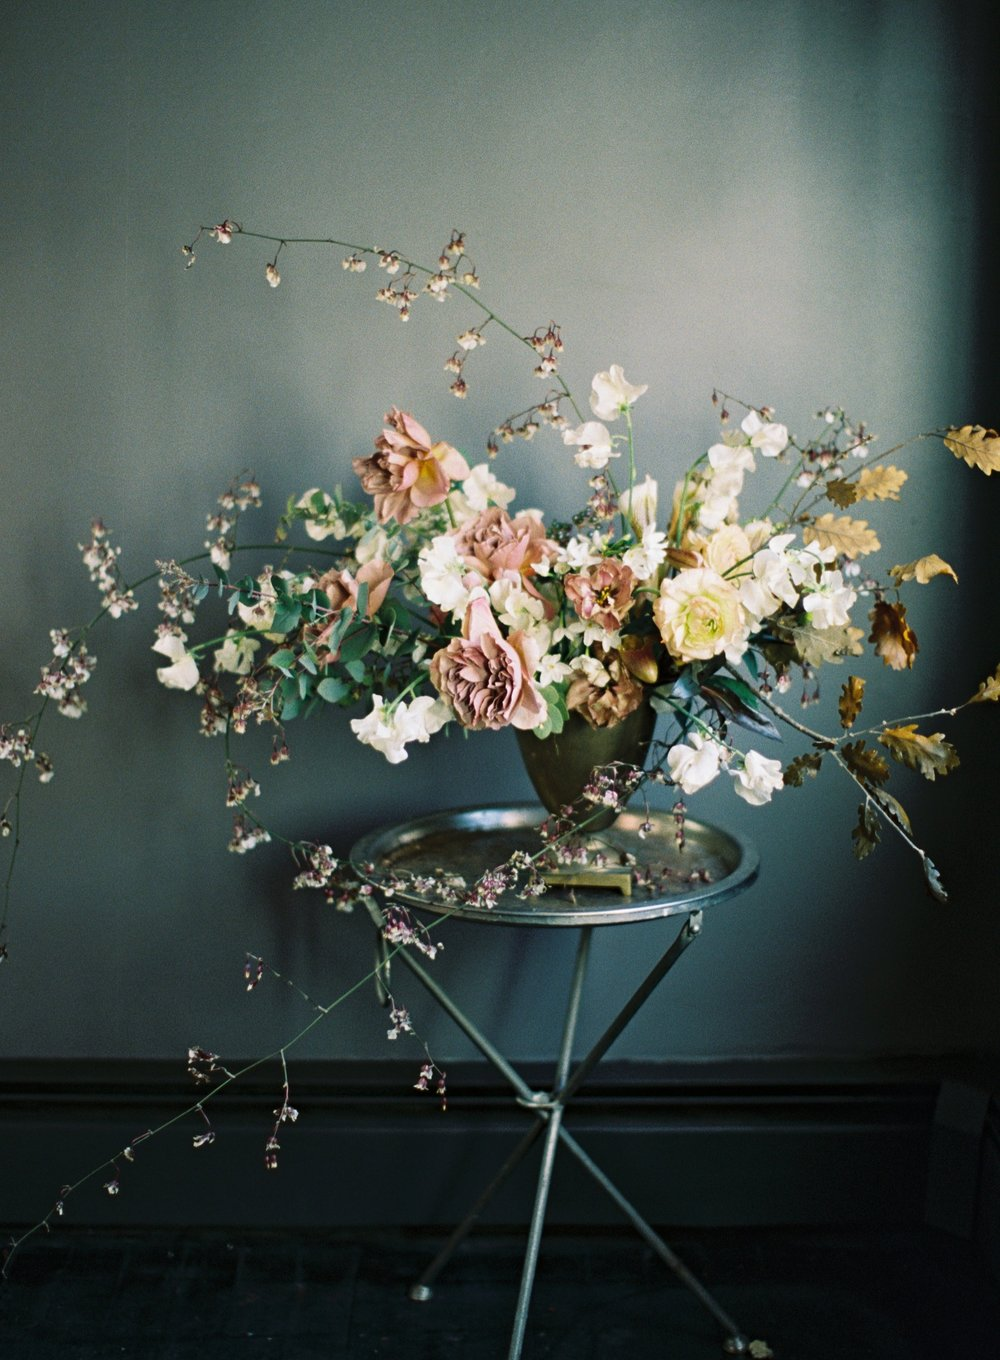 ikebana floral arrangement by Kelly Lenard